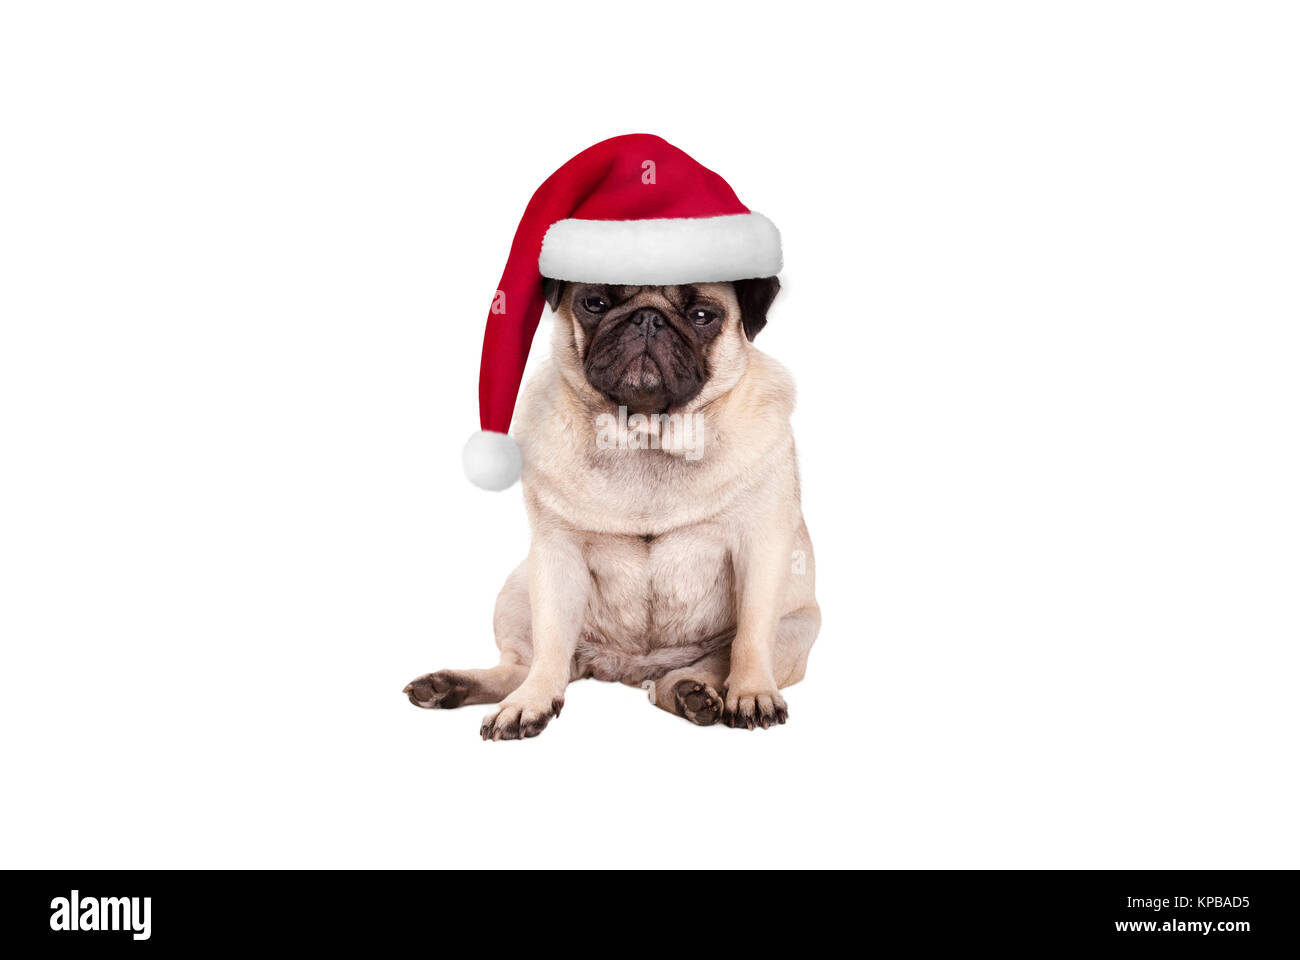 cute pug puppy dog with santa hat for Christmas, sitting down, looking grumpy, isolated on white background - Stock Image